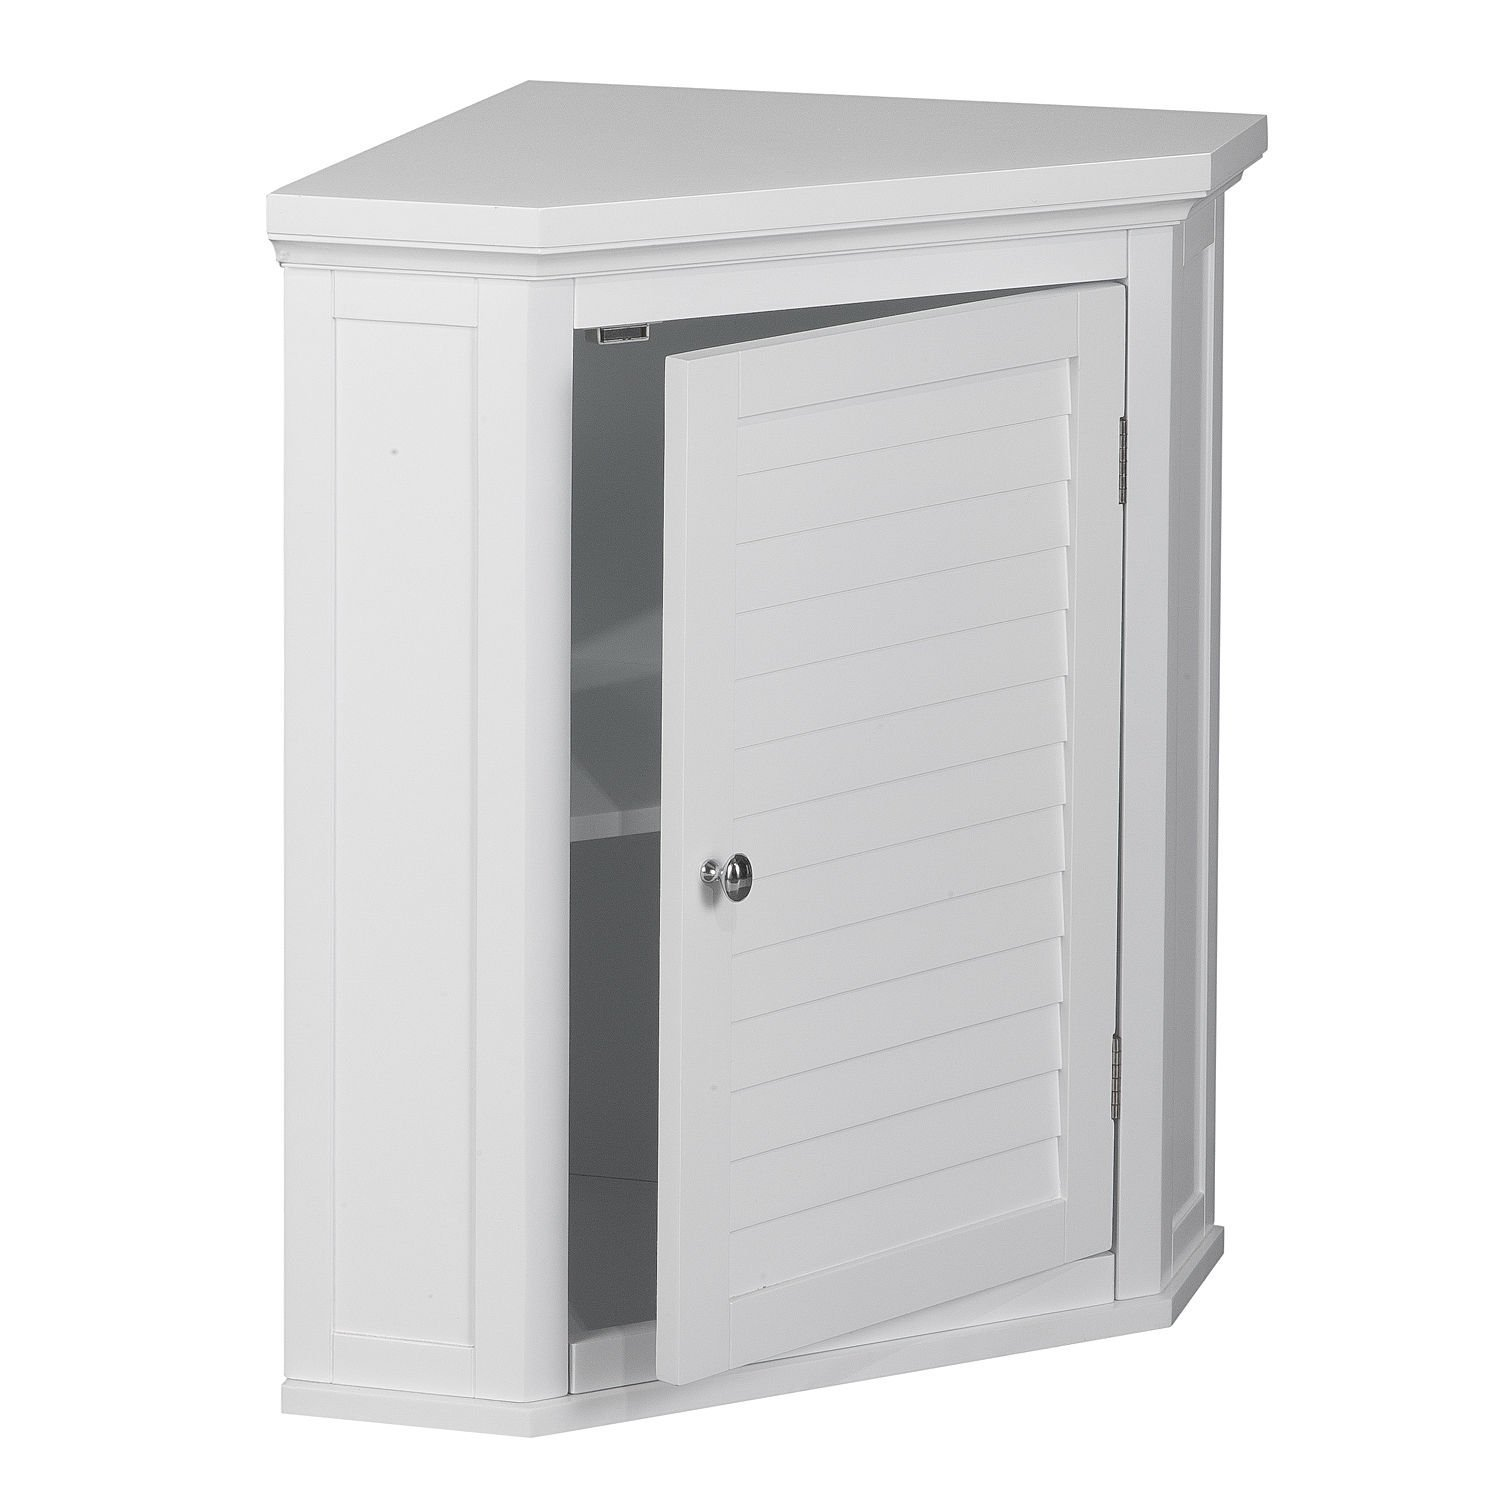 White Shutter Door Corner Wall Storage Medicine Cabinet with Adjustable Shelves for Bathroom or Kitchen SALE! Chrome... by Elegant Home Fashions